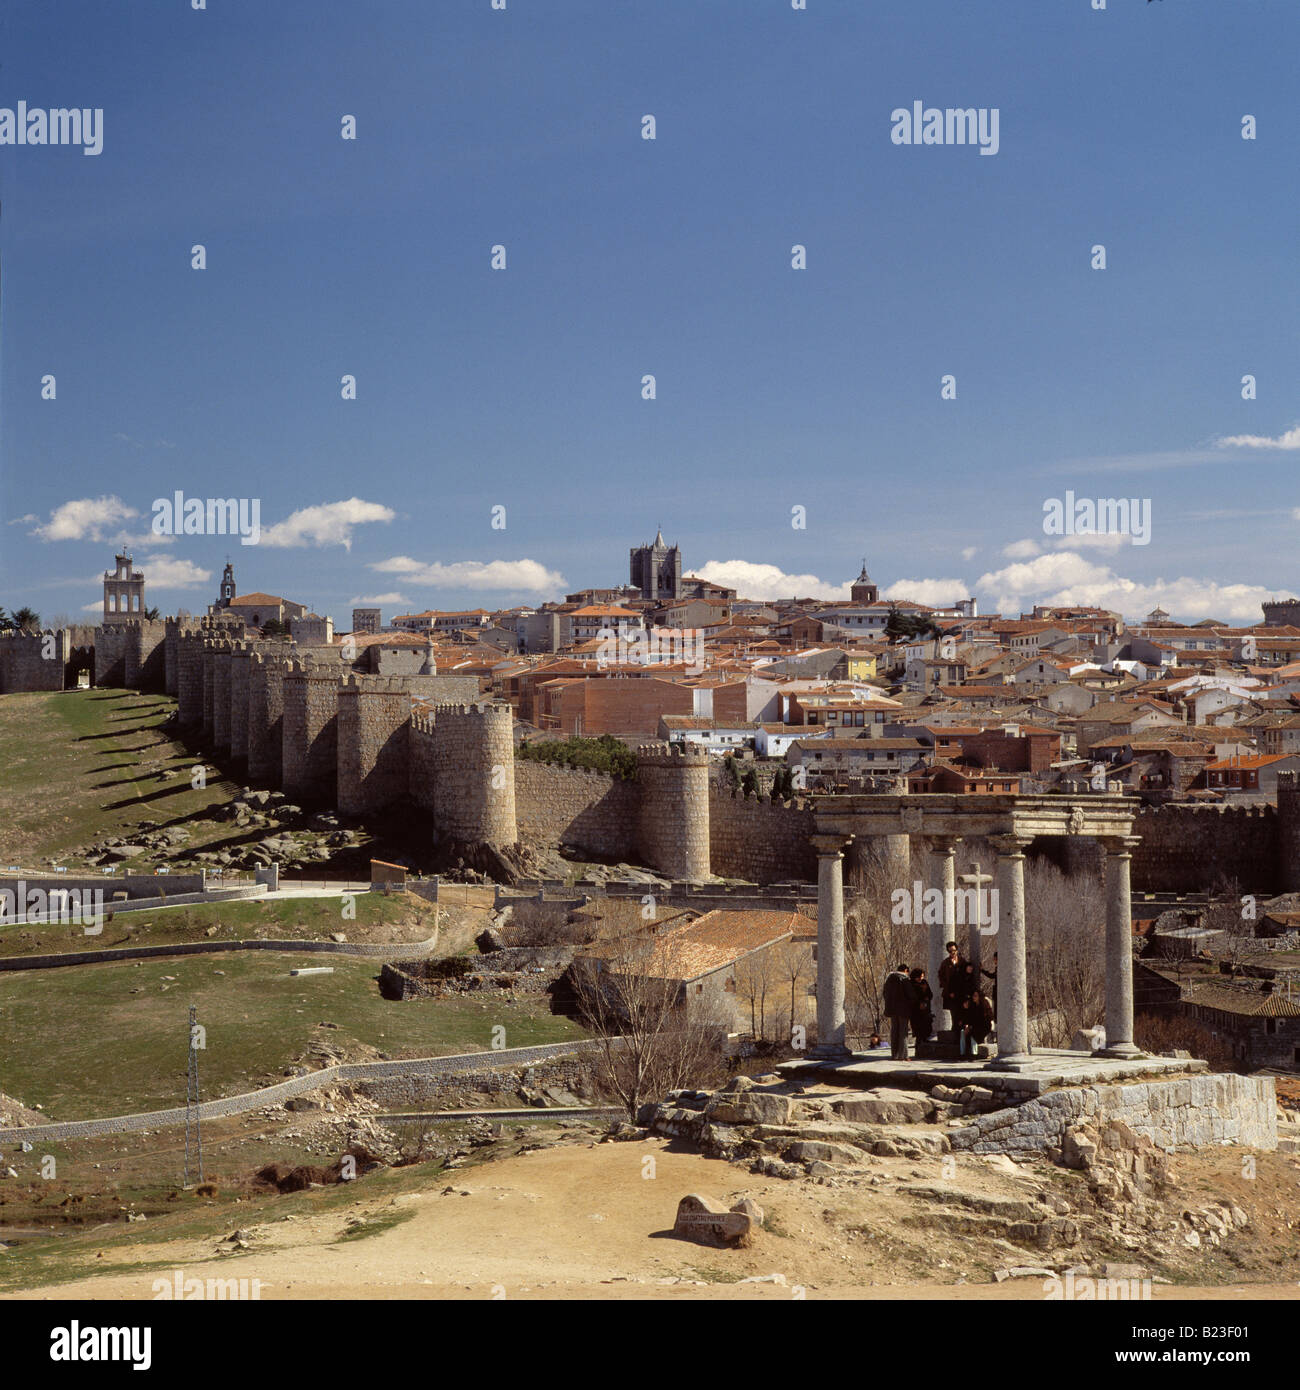 Overlook of the Stonewalls Avila Spain - Stock Image